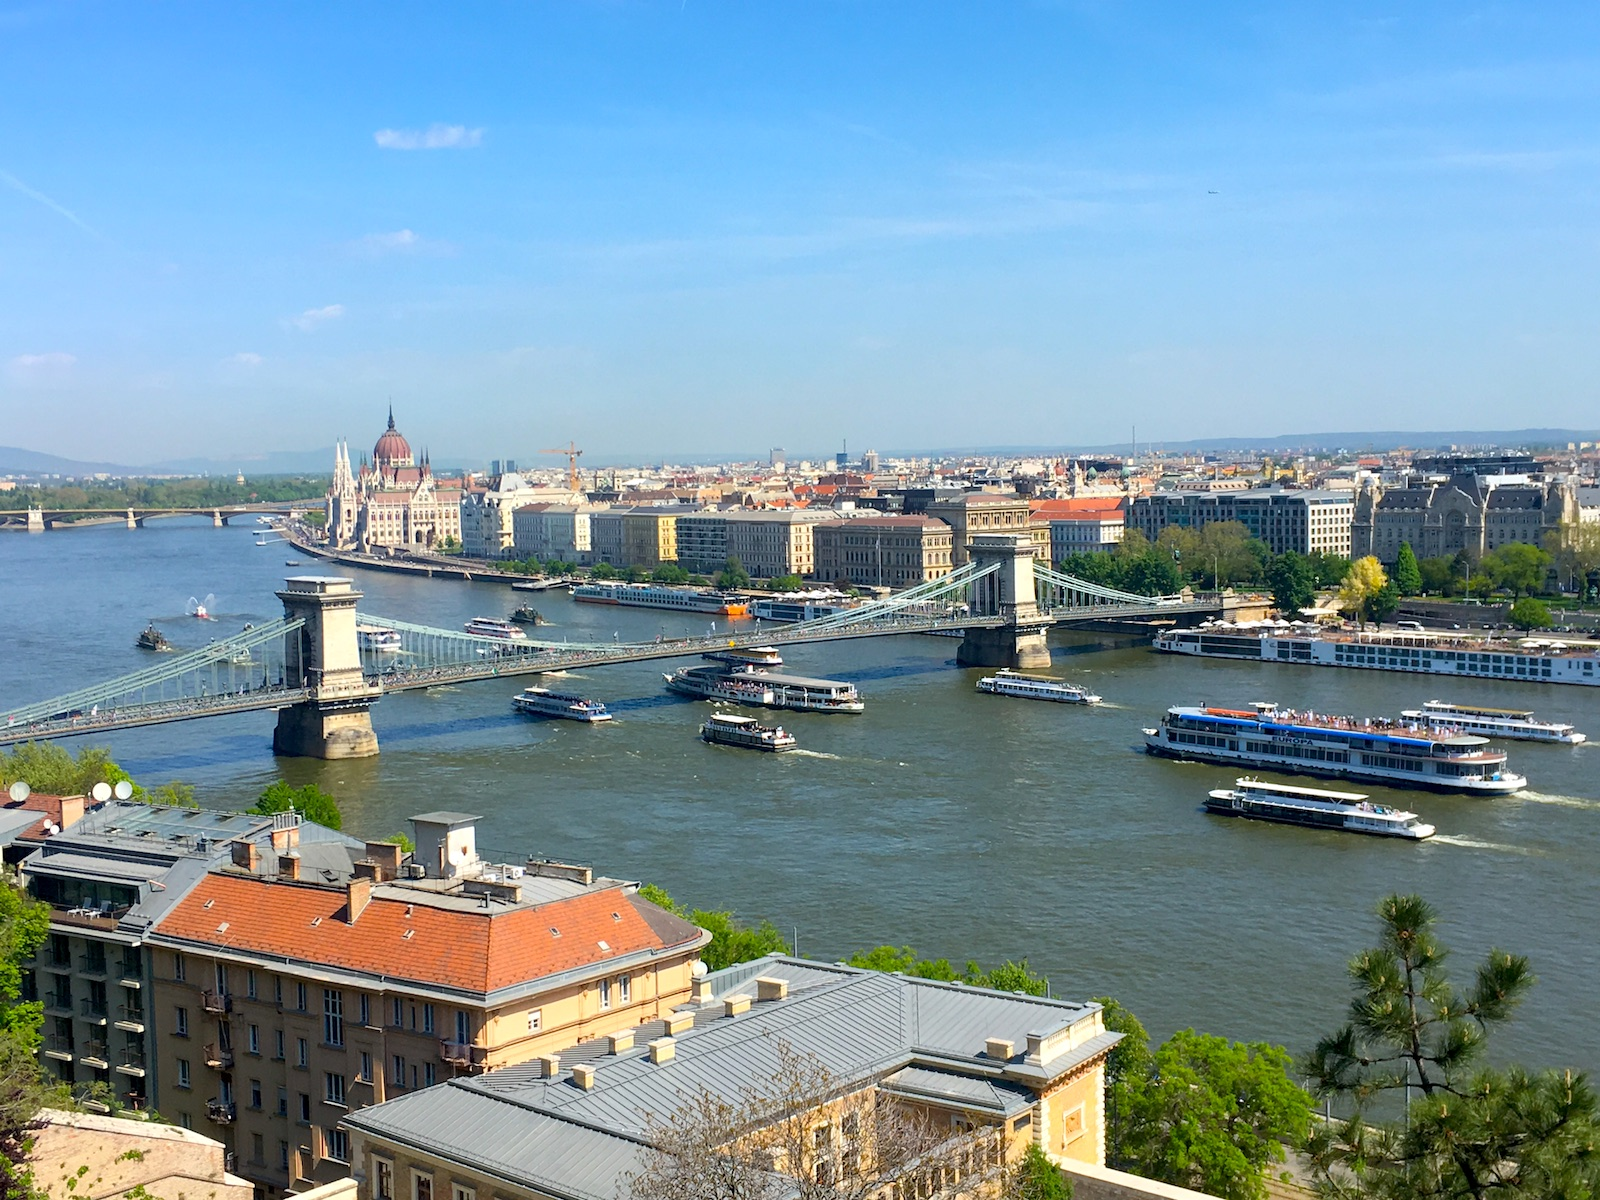 Danube cruise with public transportation in Budapest